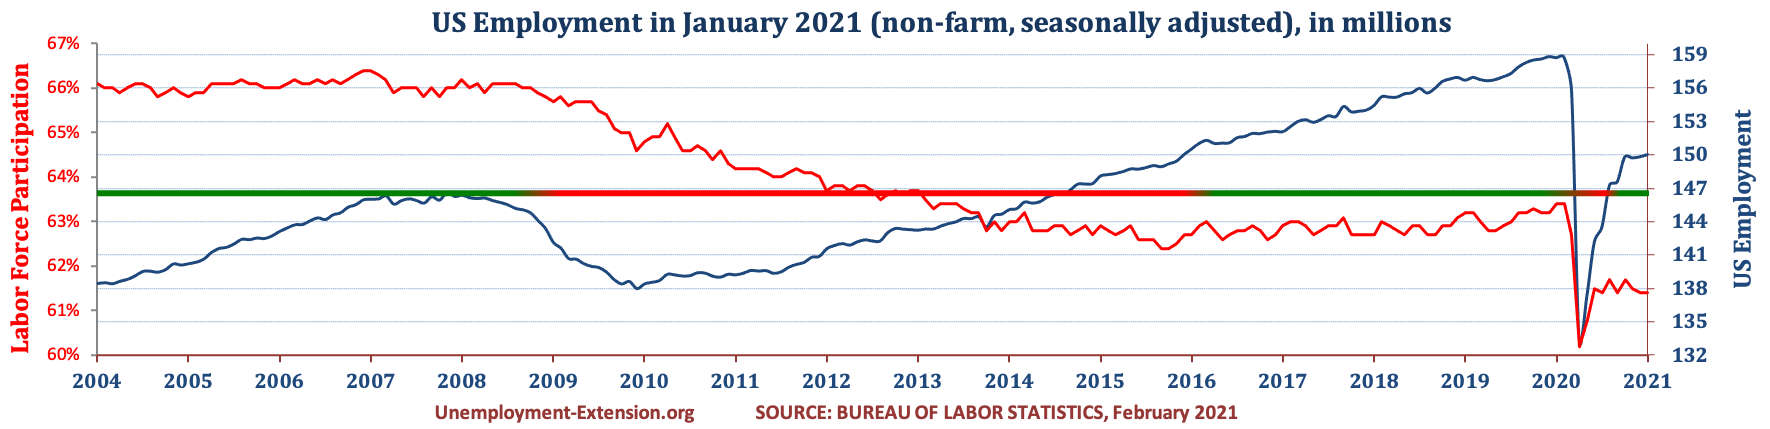 Total US Employment (non-farm, seasonally adjusted) in December 2020. US economy has lost approximately 10 million jobs in comparison to pre-resession level.